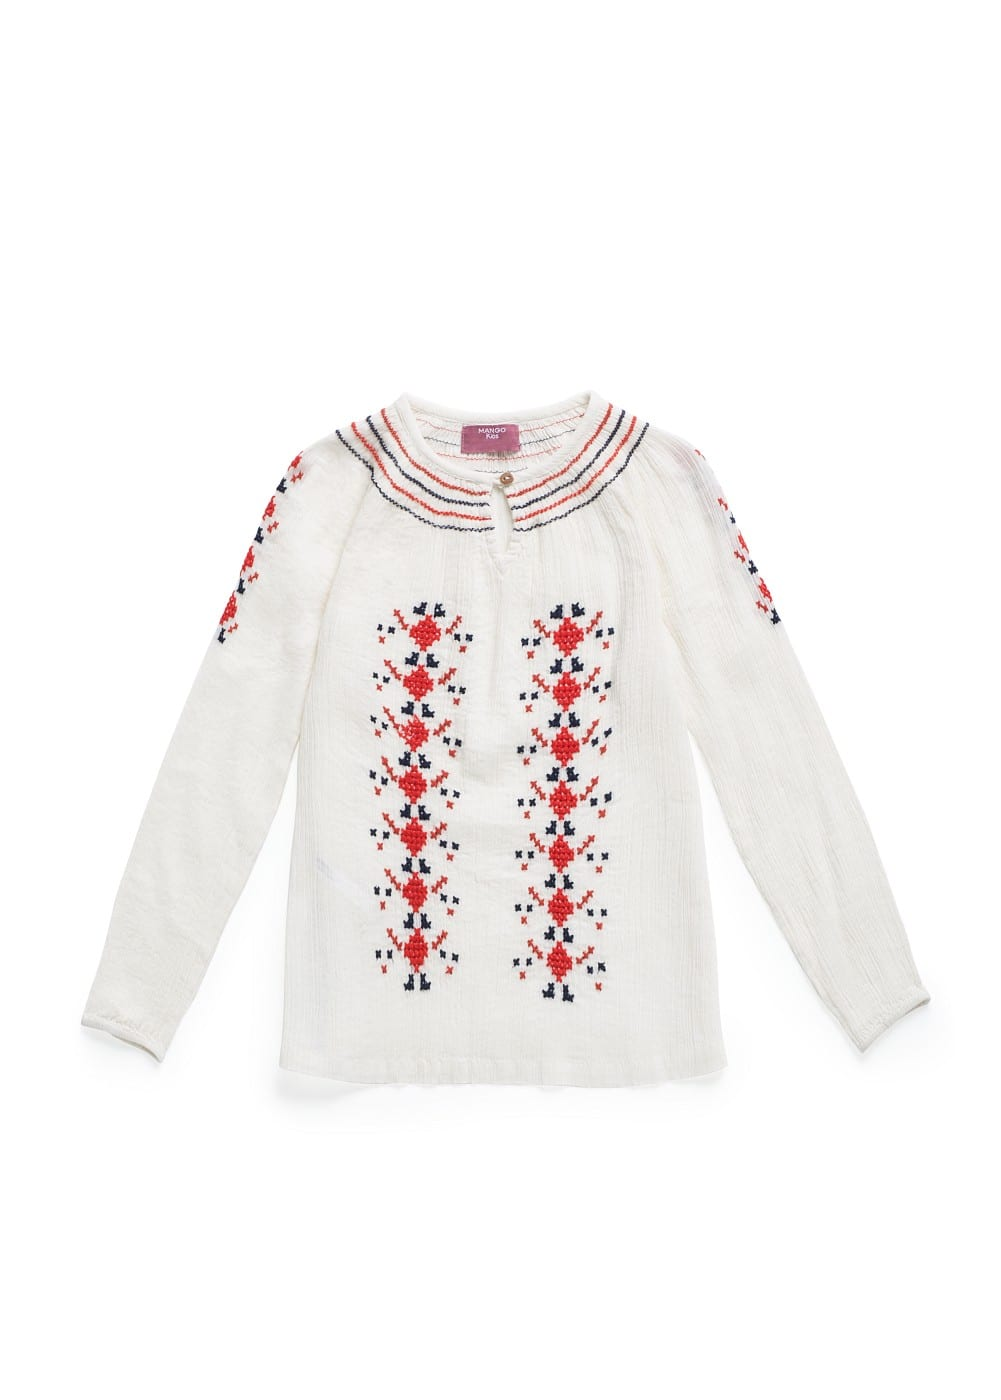 Cross-stitch embroidery blouse | MANGO MAN